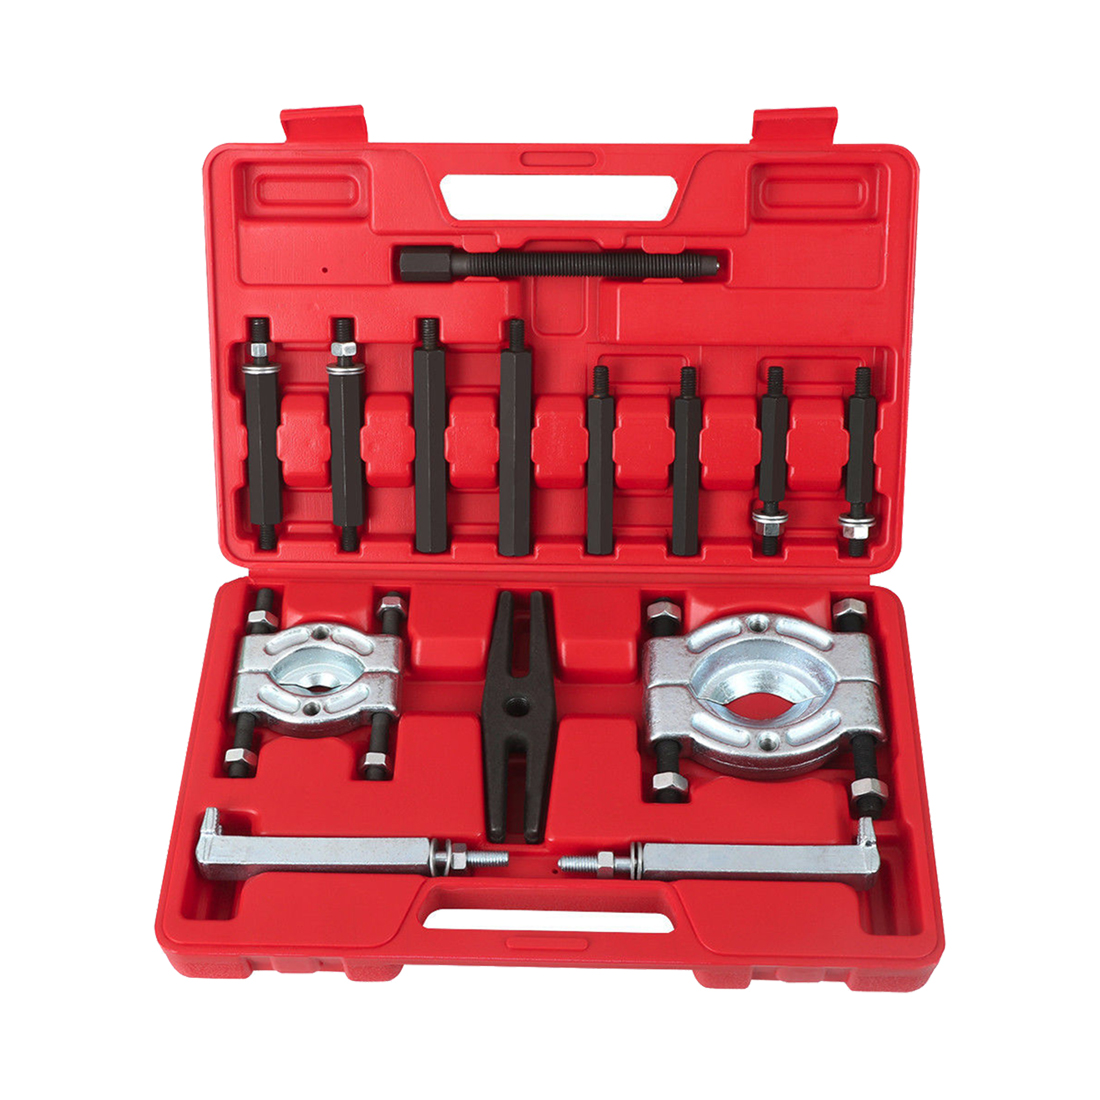 Bearing Puller Separator Set 2 ; 3 Splitters Long Jaw Gear Pulley Removal BarBearing Puller Separator Set 2 ; 3 Splitters Long Jaw Gear Pulley Removal Bar